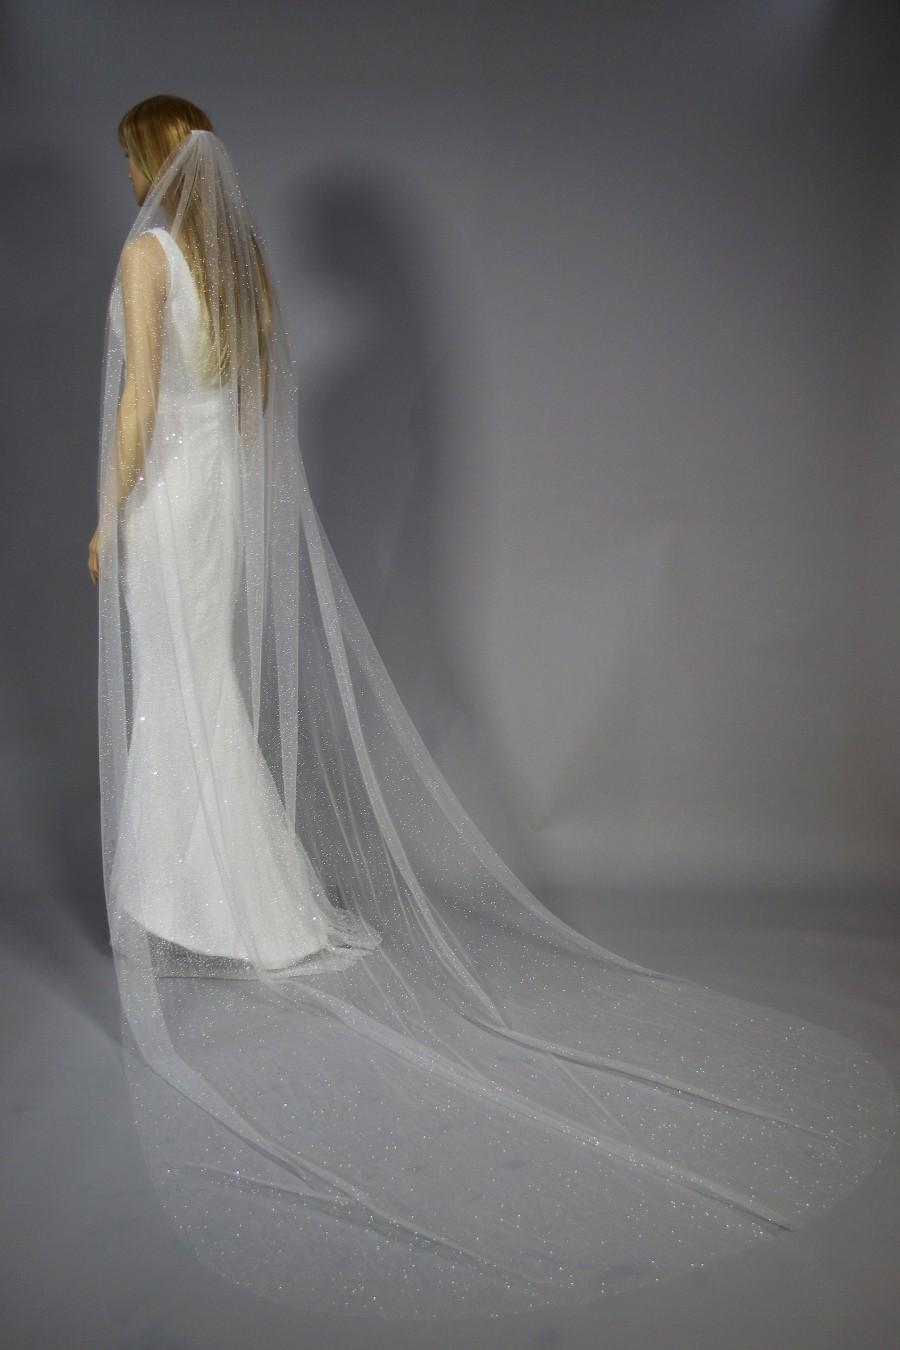 Wedding - Wedding veil, cathedral veil, chapel veil, fingertip veil, 1 tier veil, custom made veil, sparkle veil, glitter veil. KA15